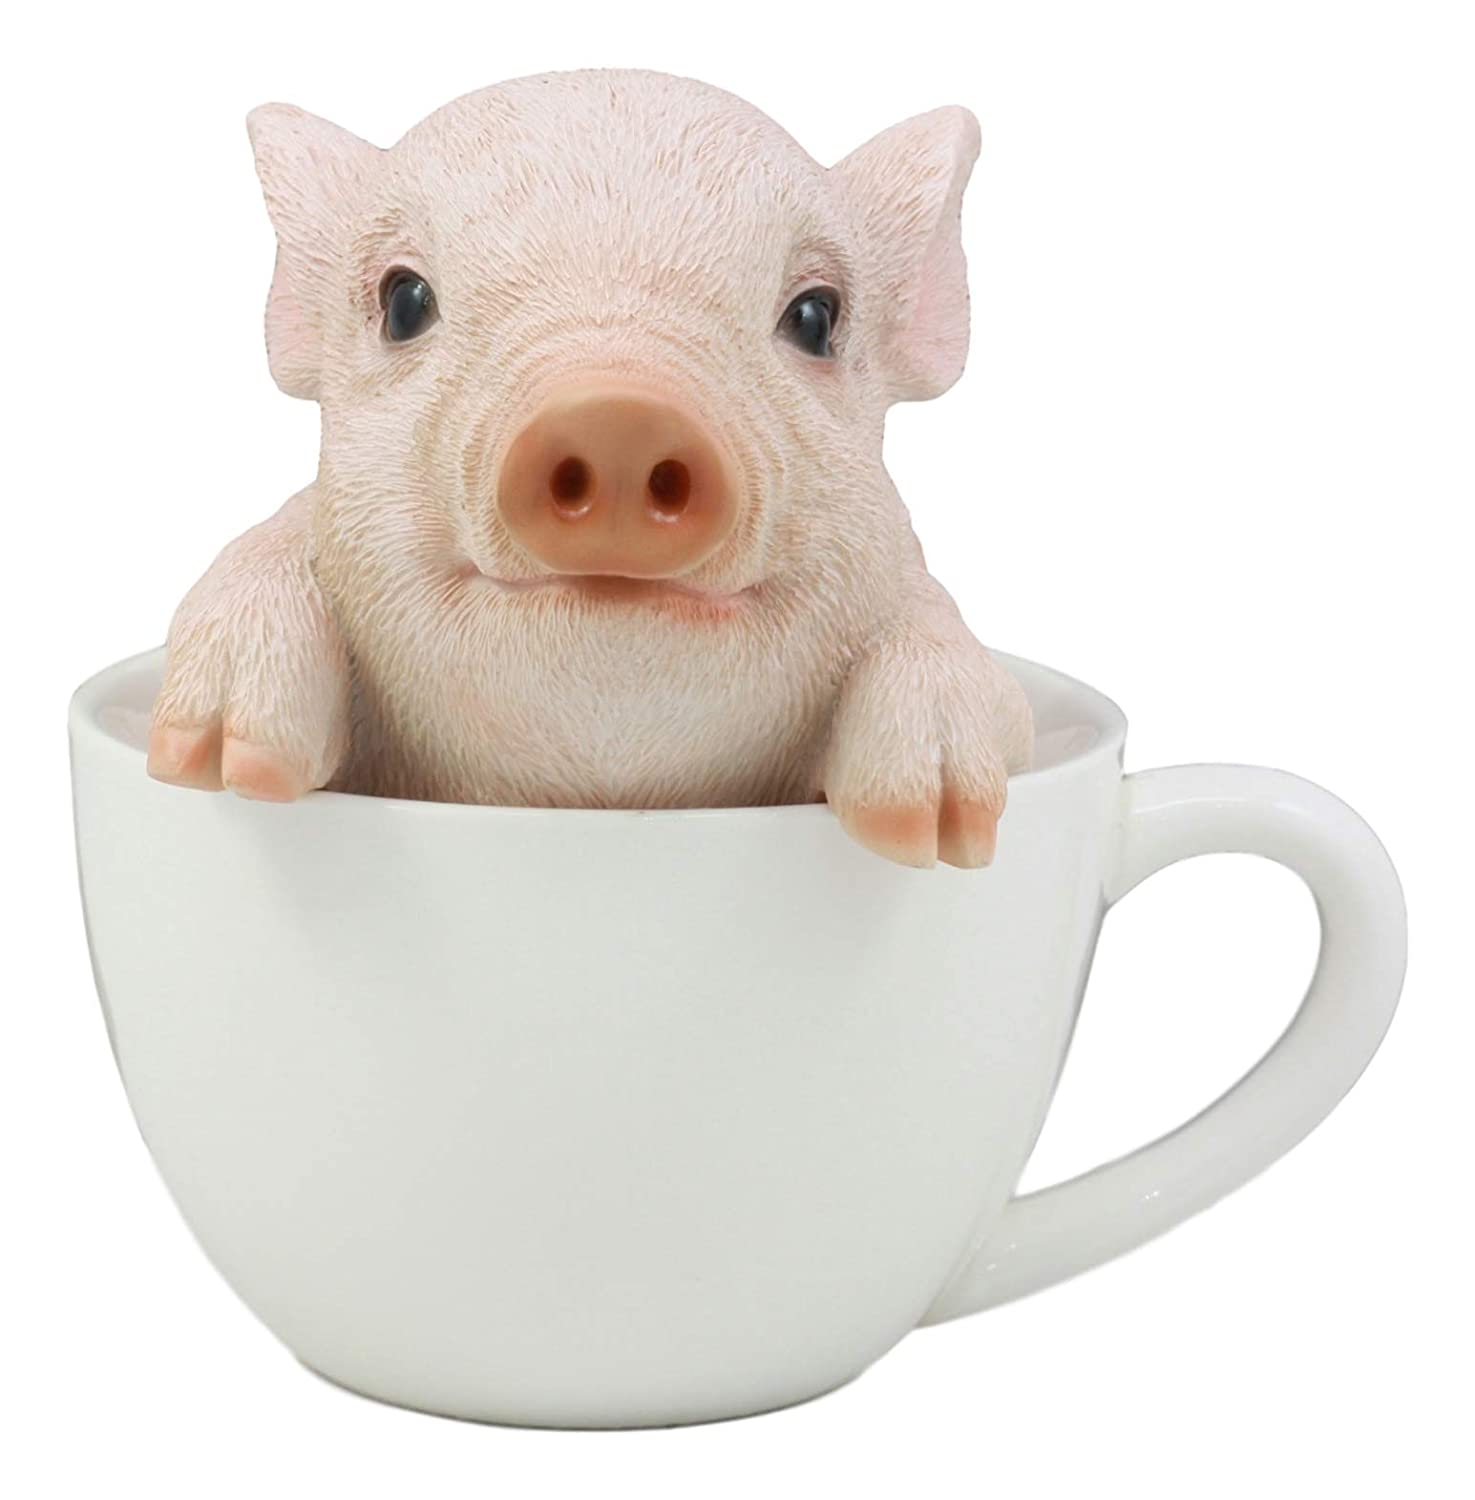 "Ebros Adorable Babe Teacup Pig Figurine 5.25"" Tall Realistic Animal Collectible Design Decor Statue with Glass Eyes"